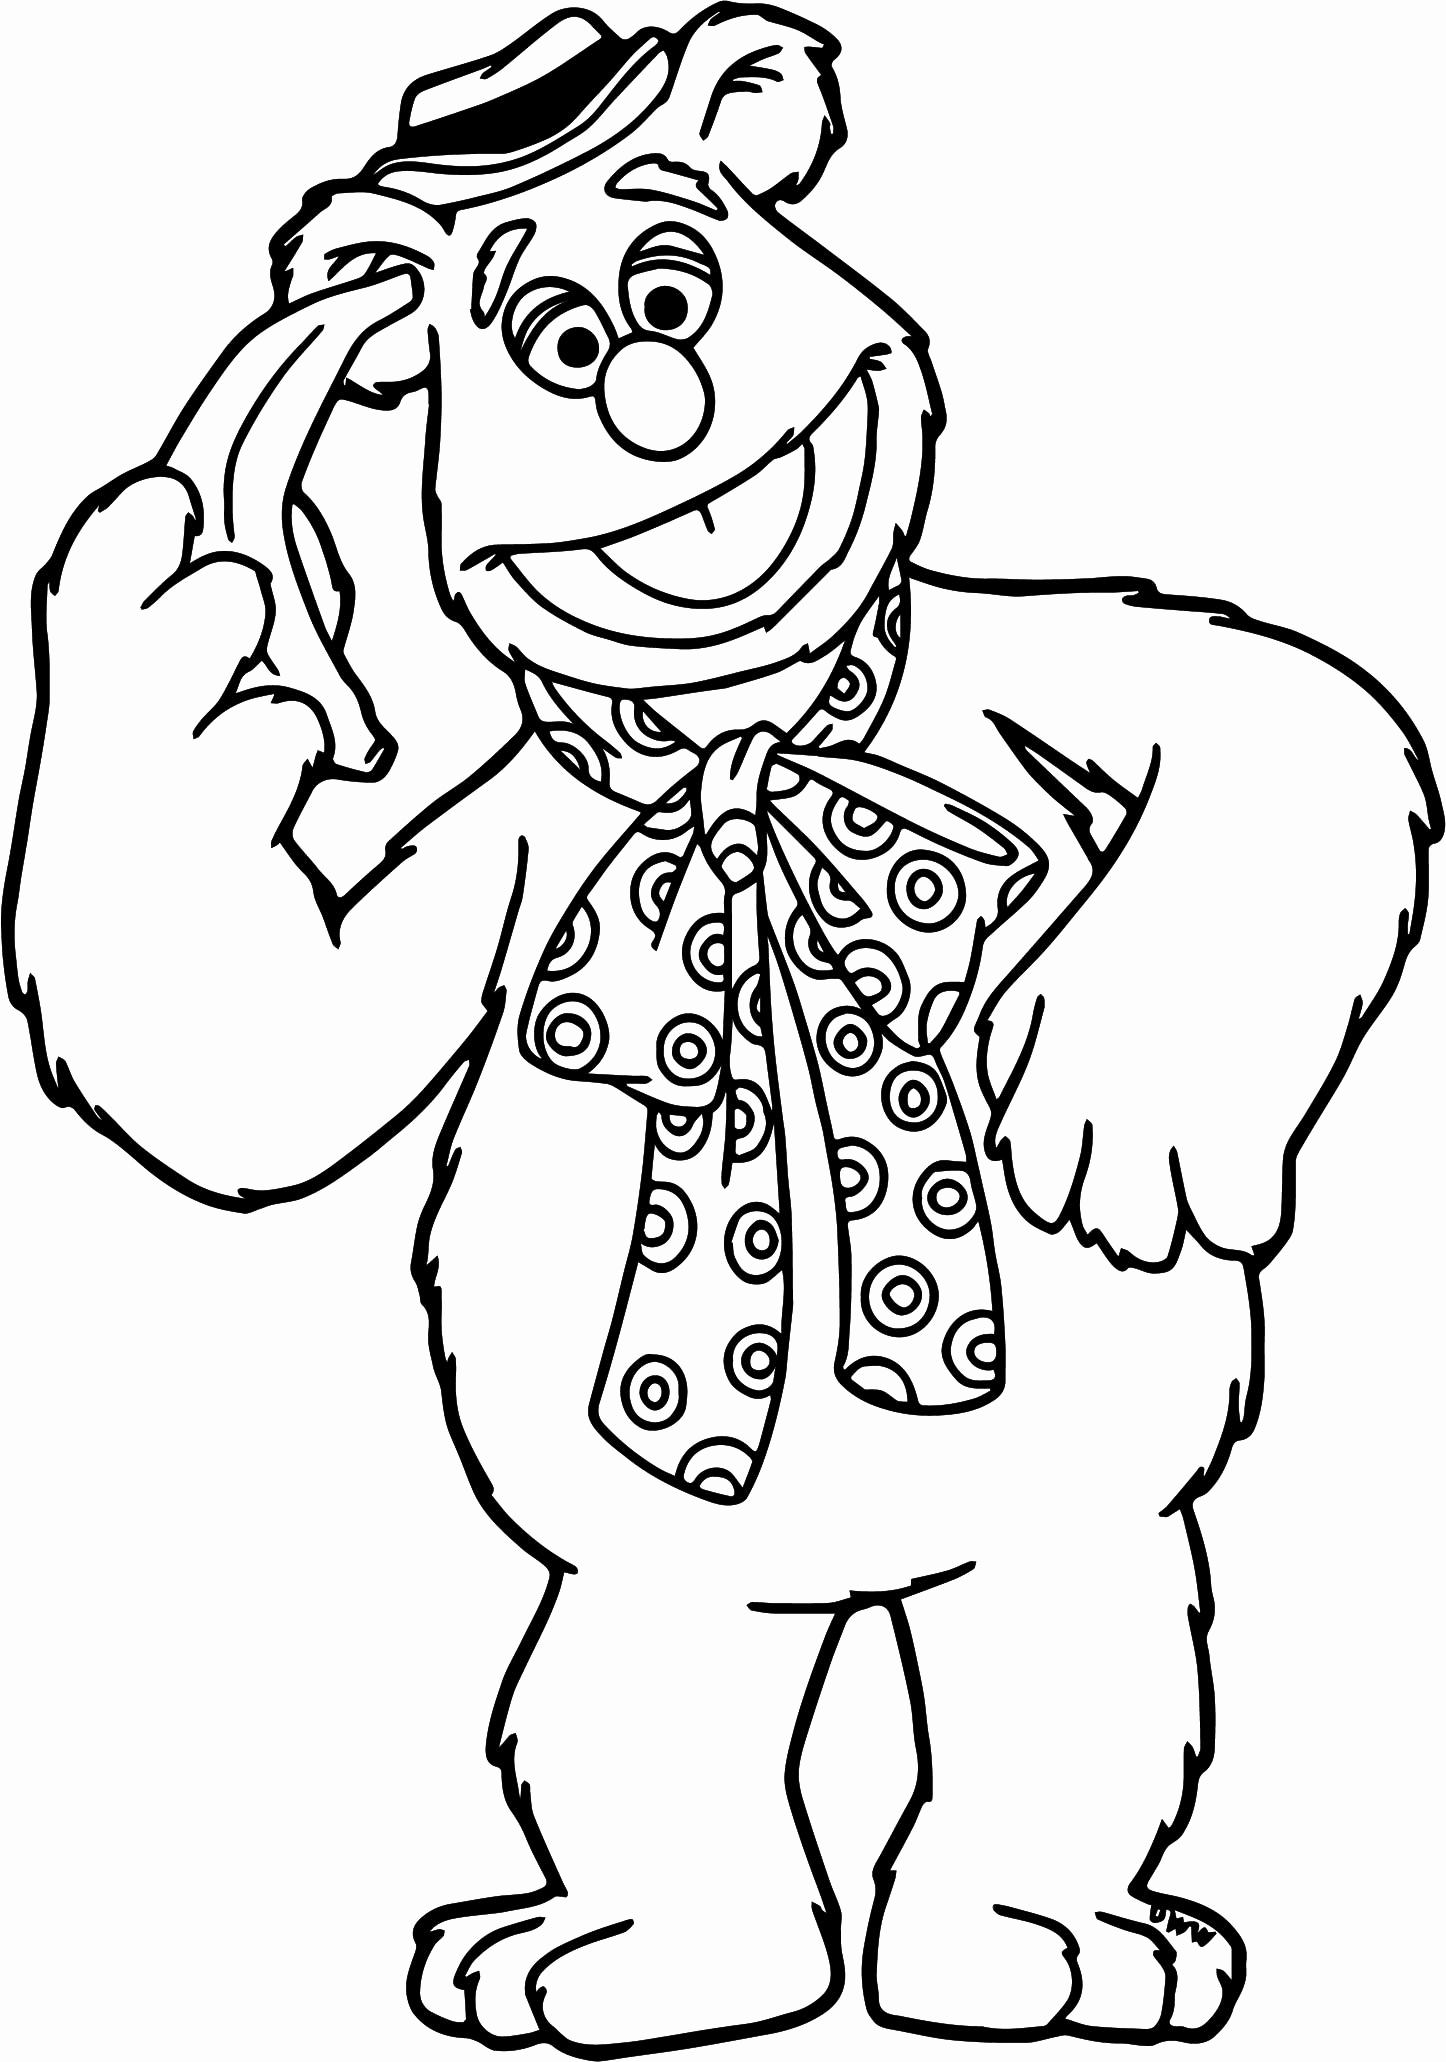 1446x2062 Free Printable Coloring Books Awesome The Muppets Beaker Fear